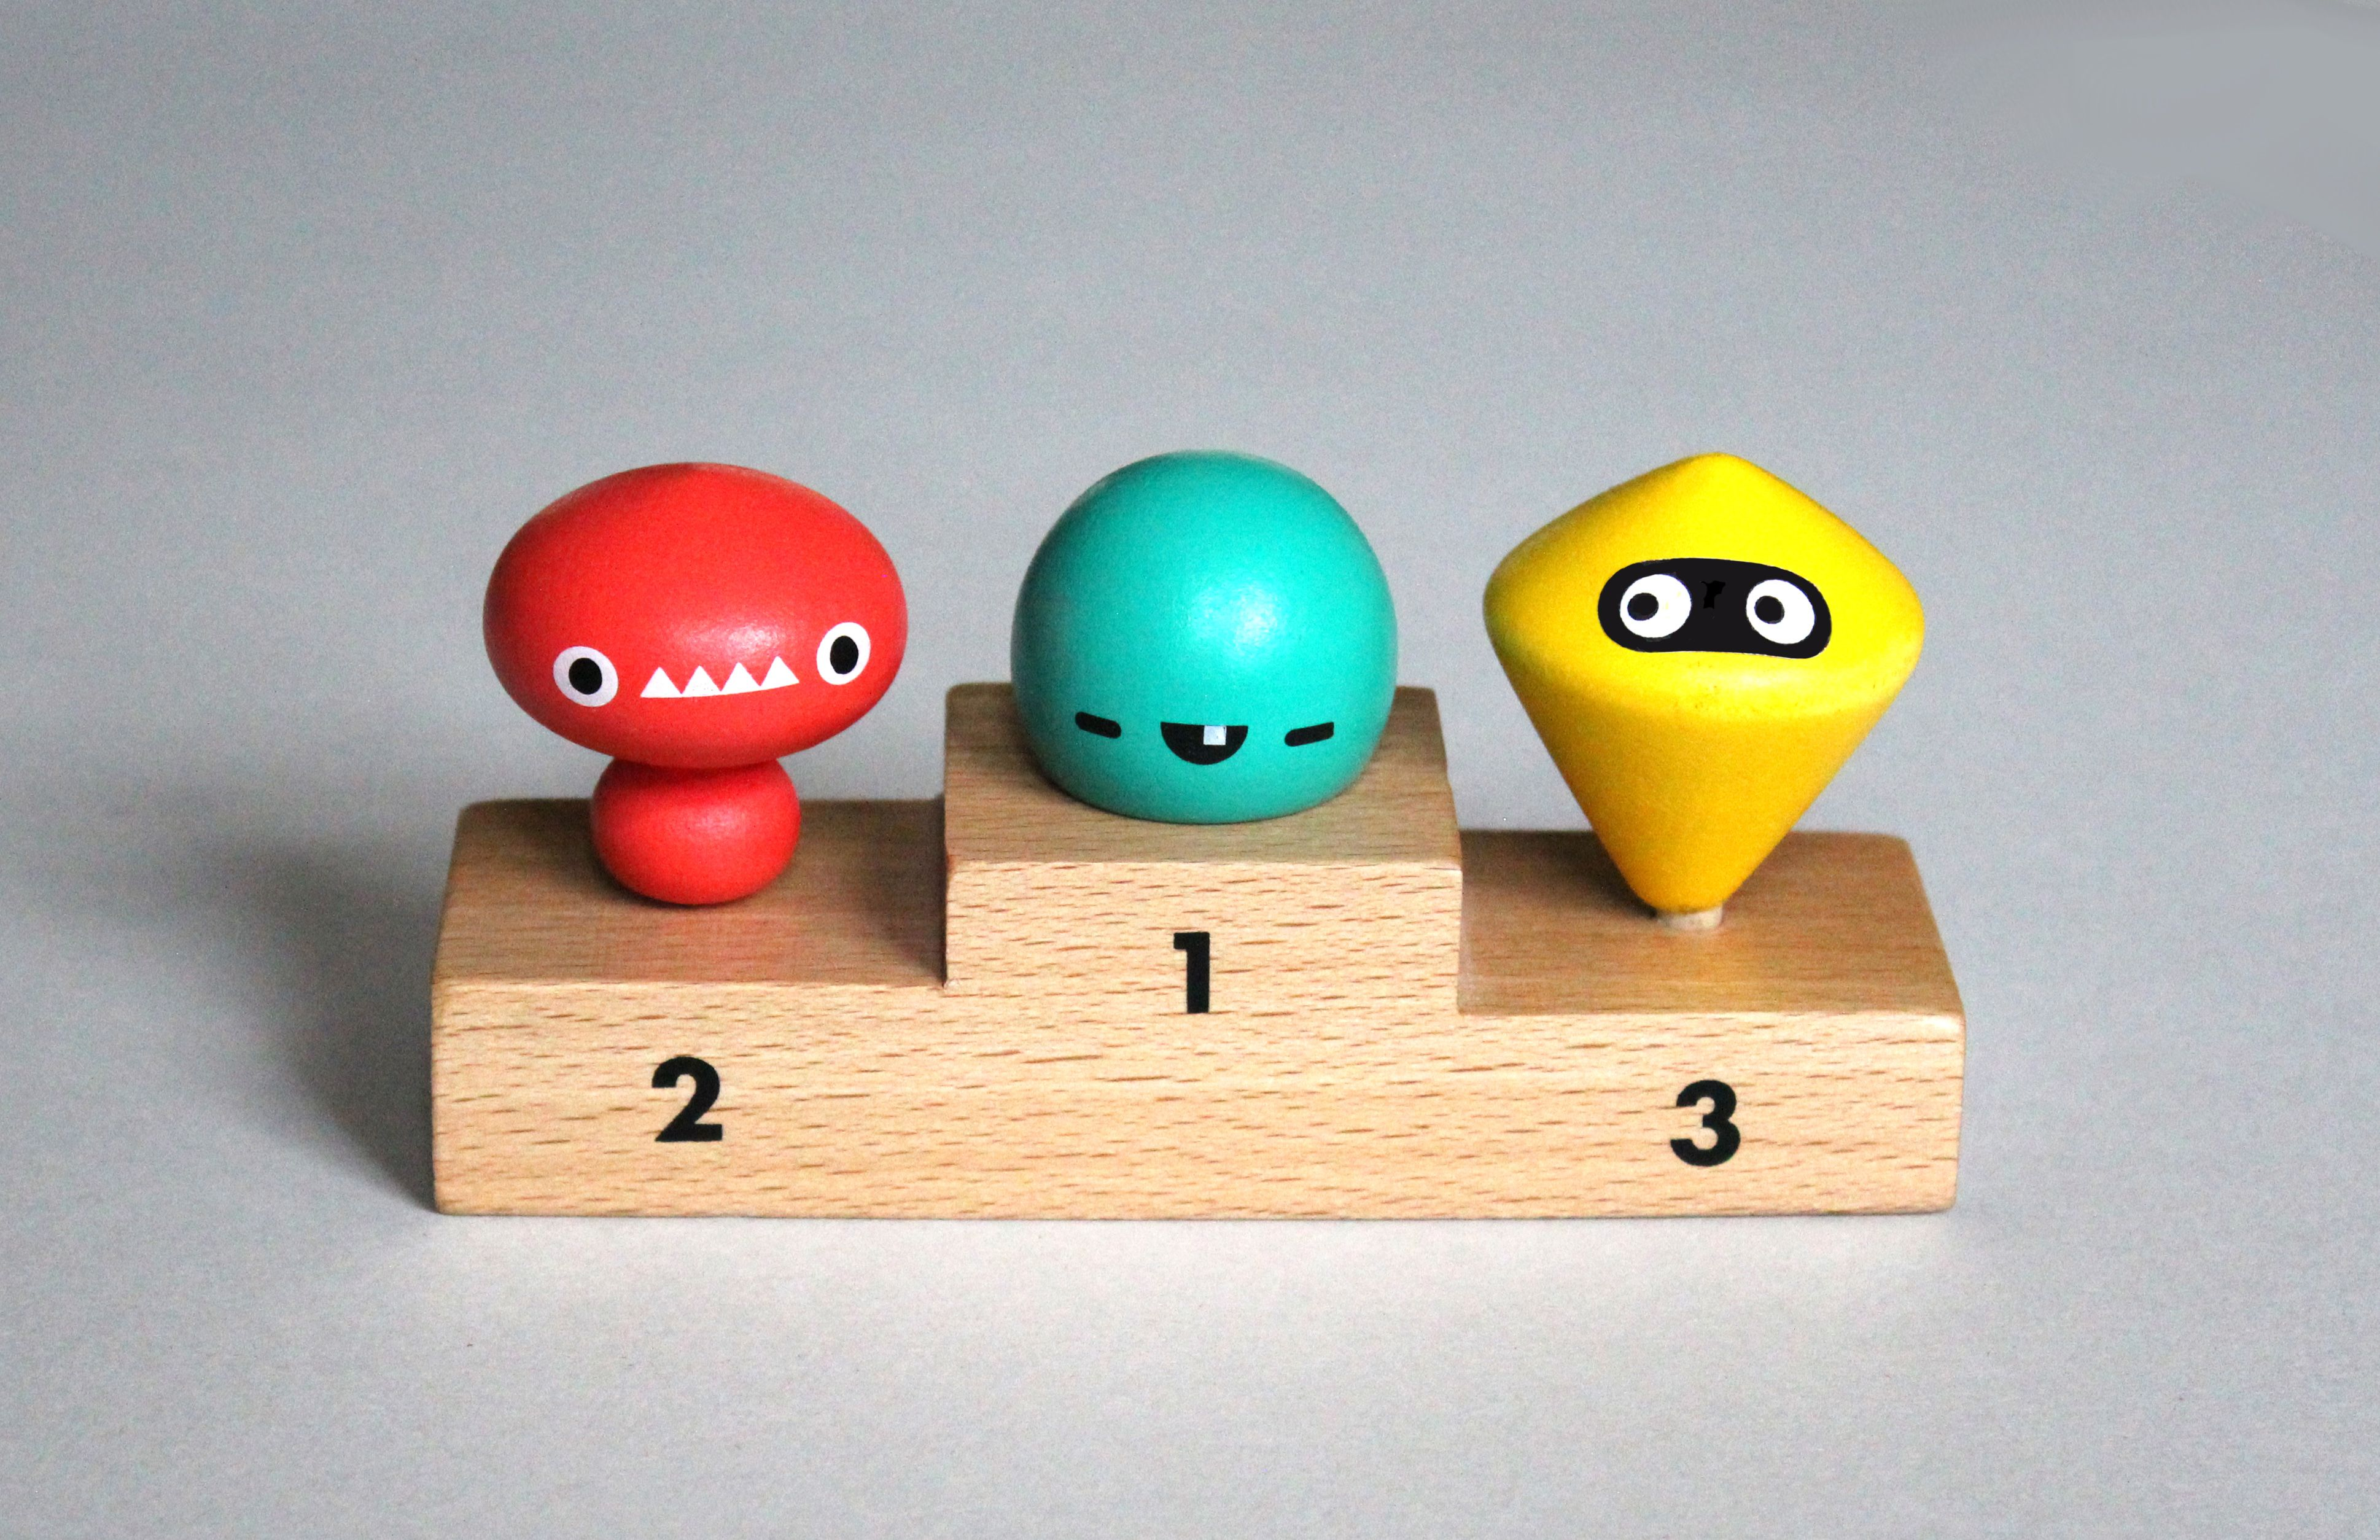 creative toys for kids by neue freunde   afilii - Design for kids